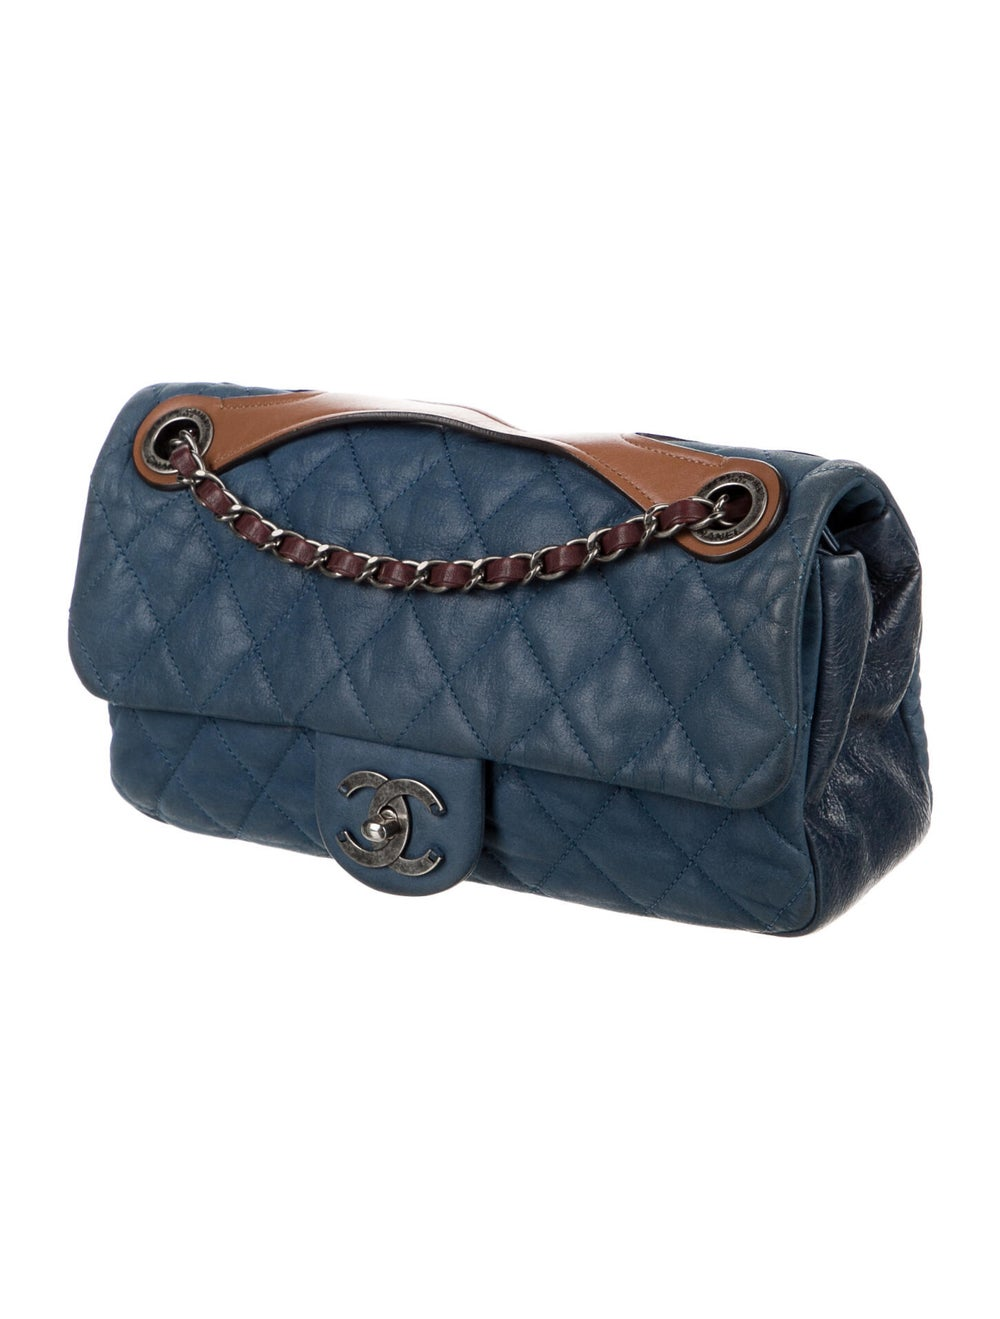 Chanel In the Mix Flap Bag Blue - image 3